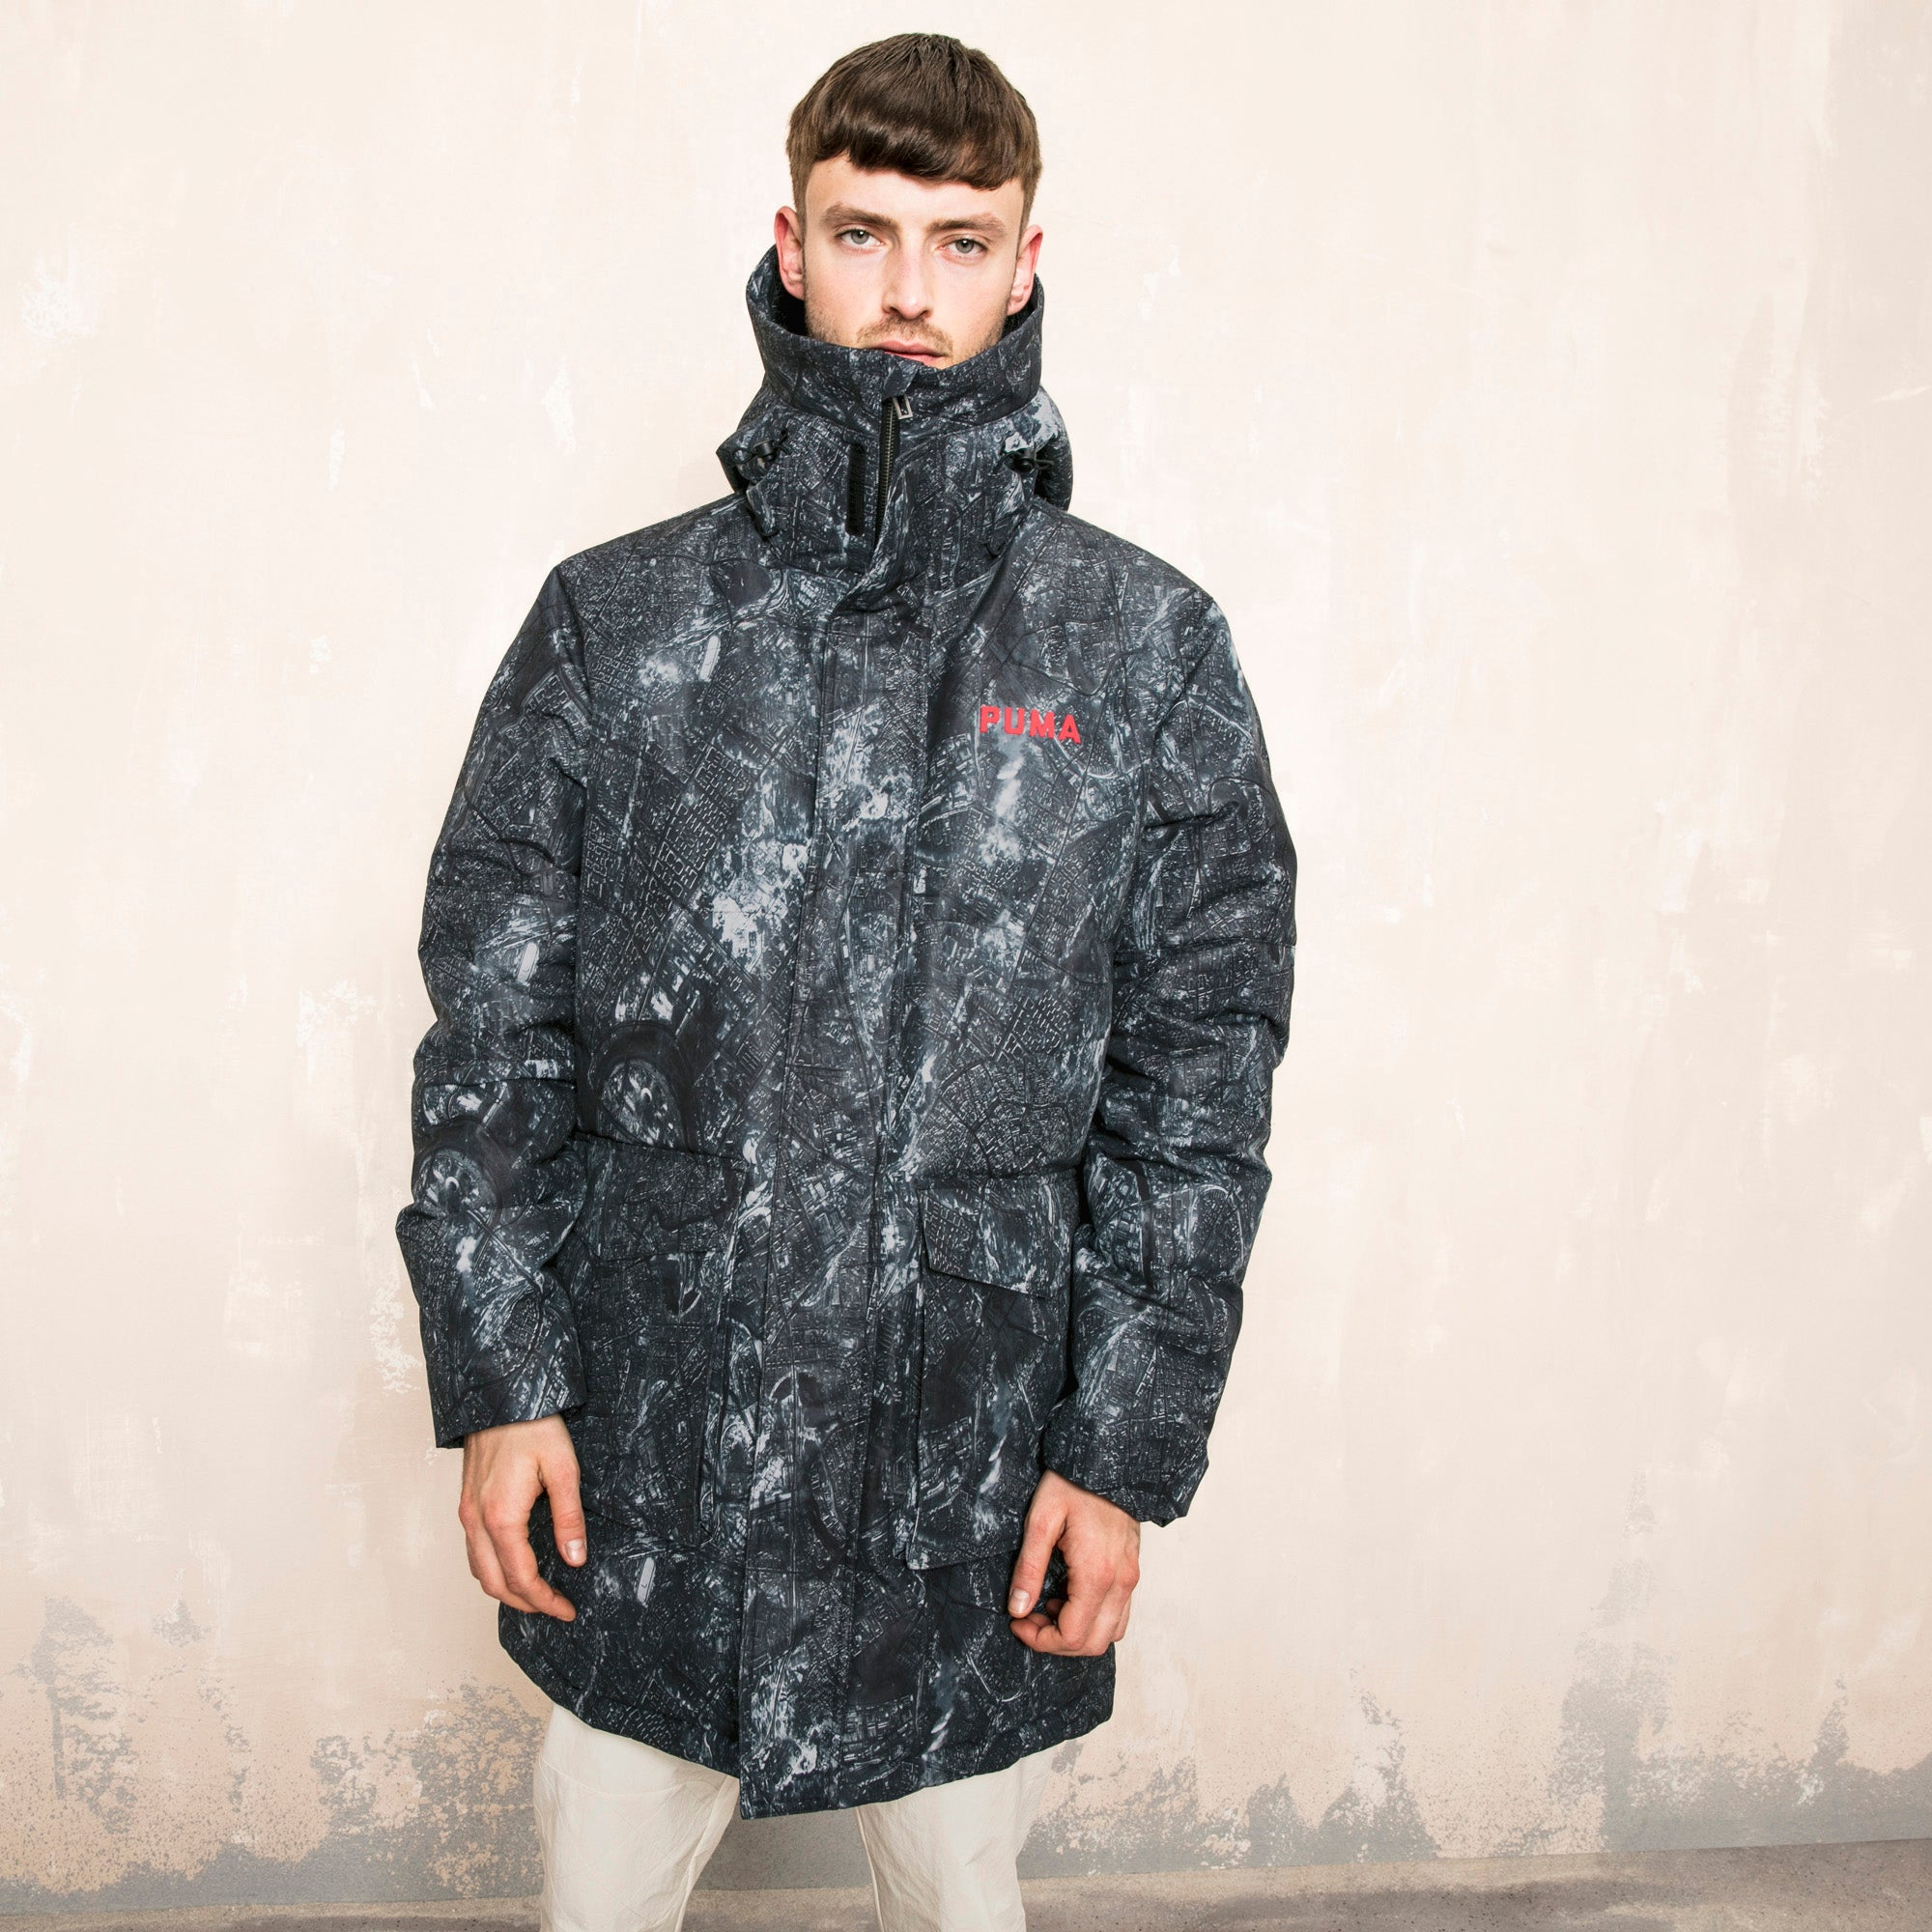 PUMA | Outlaw Moscow Jacket AOP